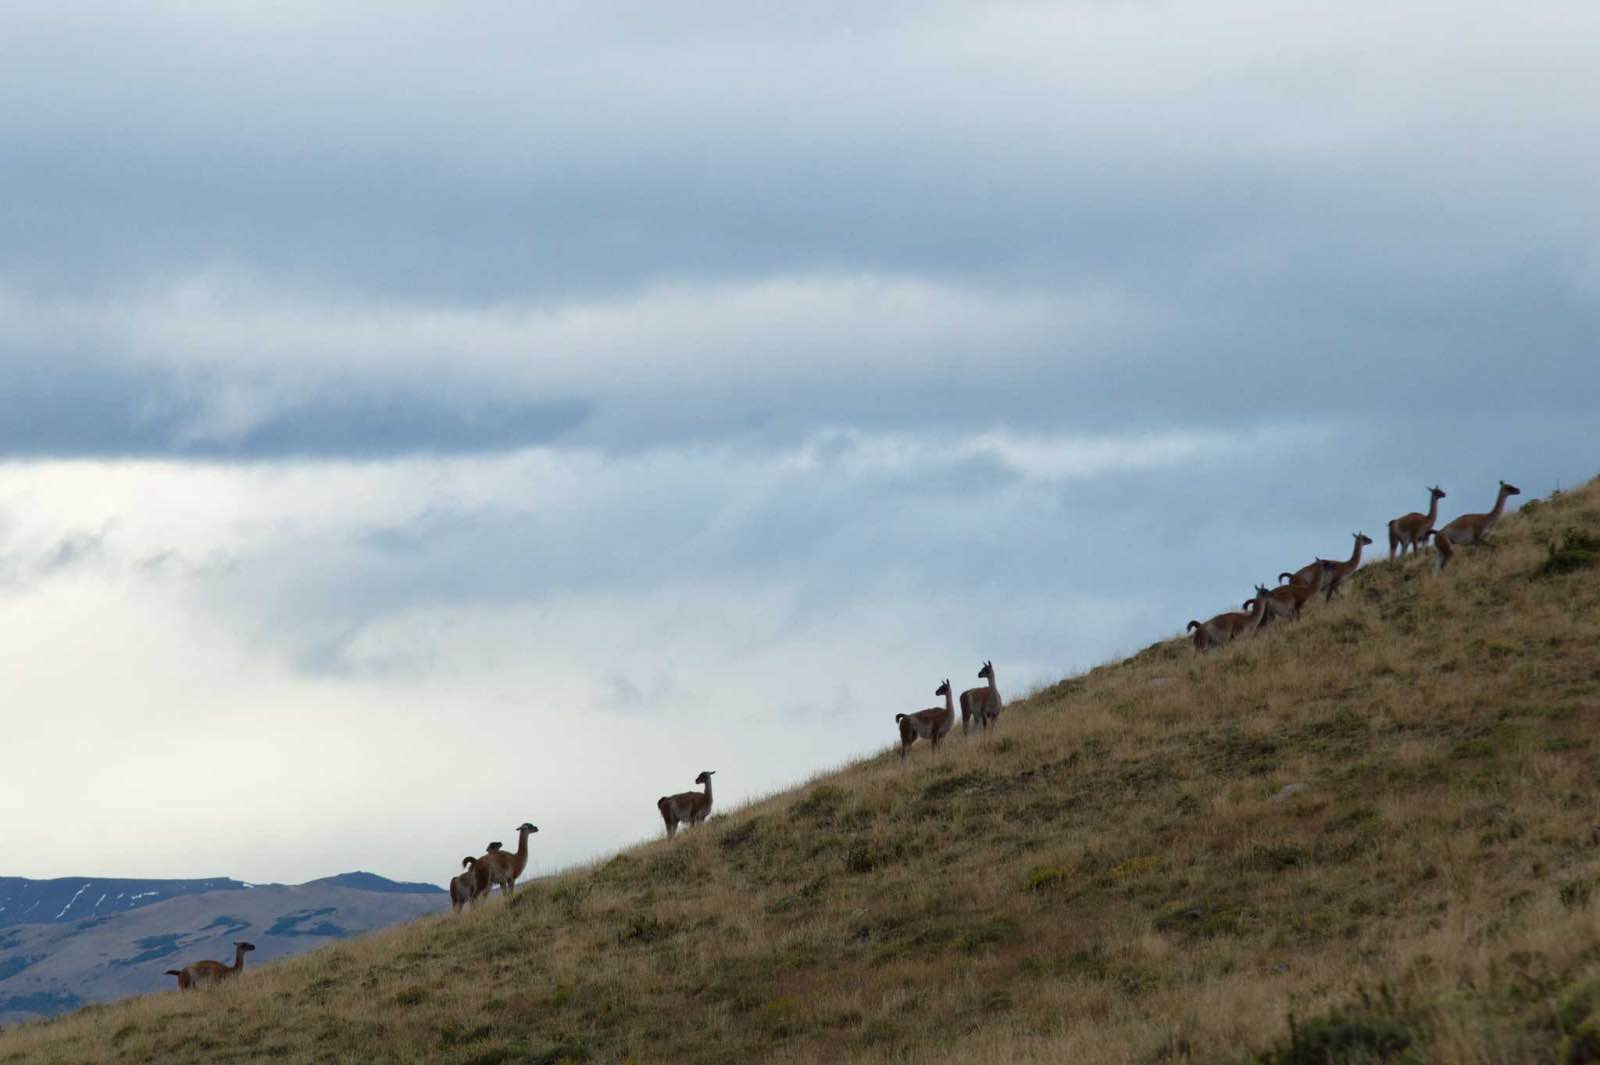 Guanacos on the hillside